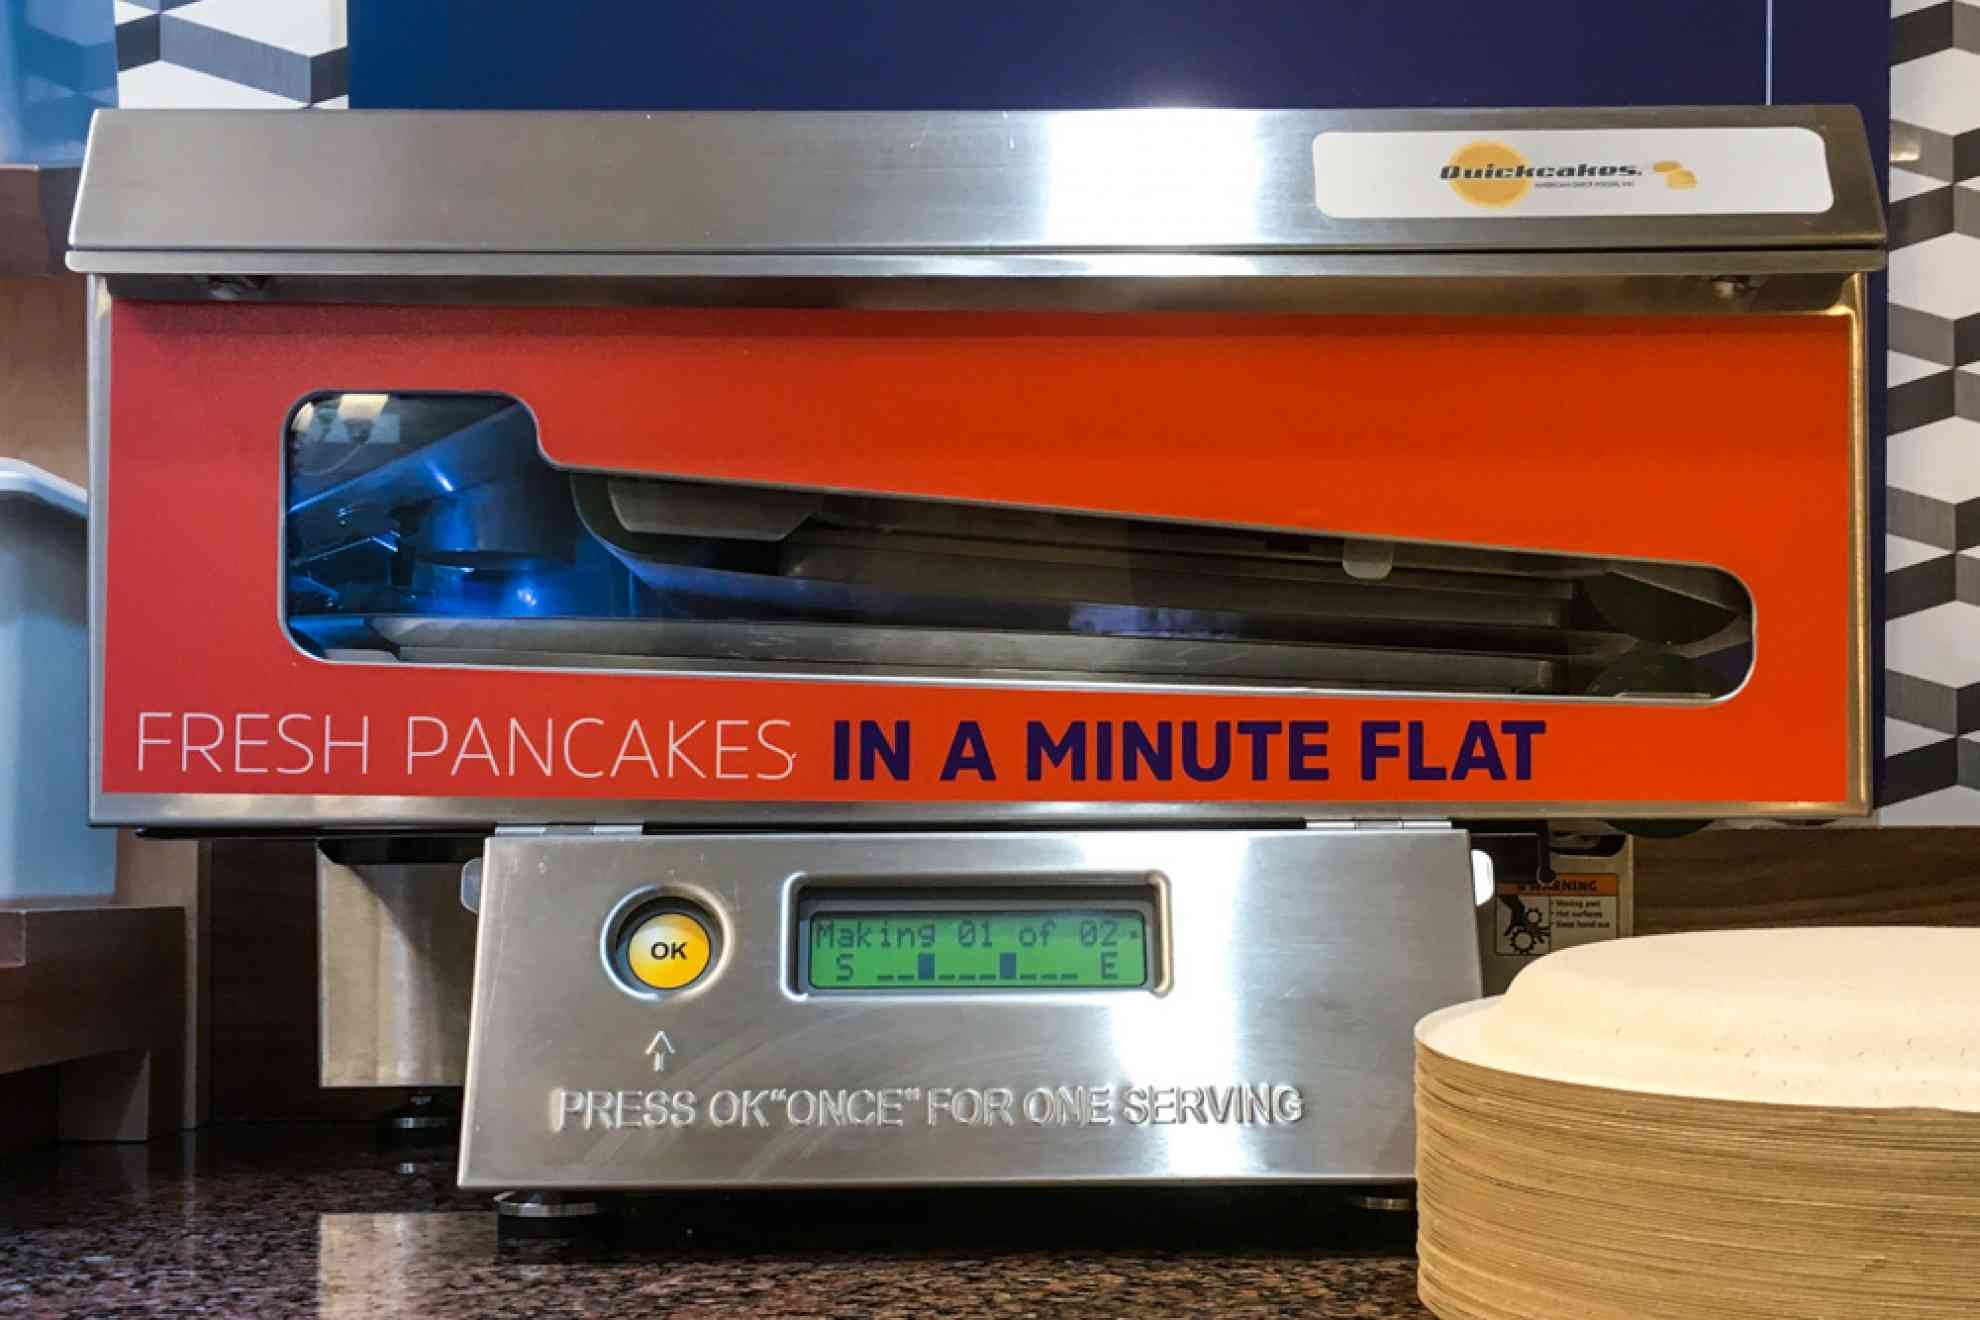 'Pancakes in a Minute' seen at a Holiday Inn Express